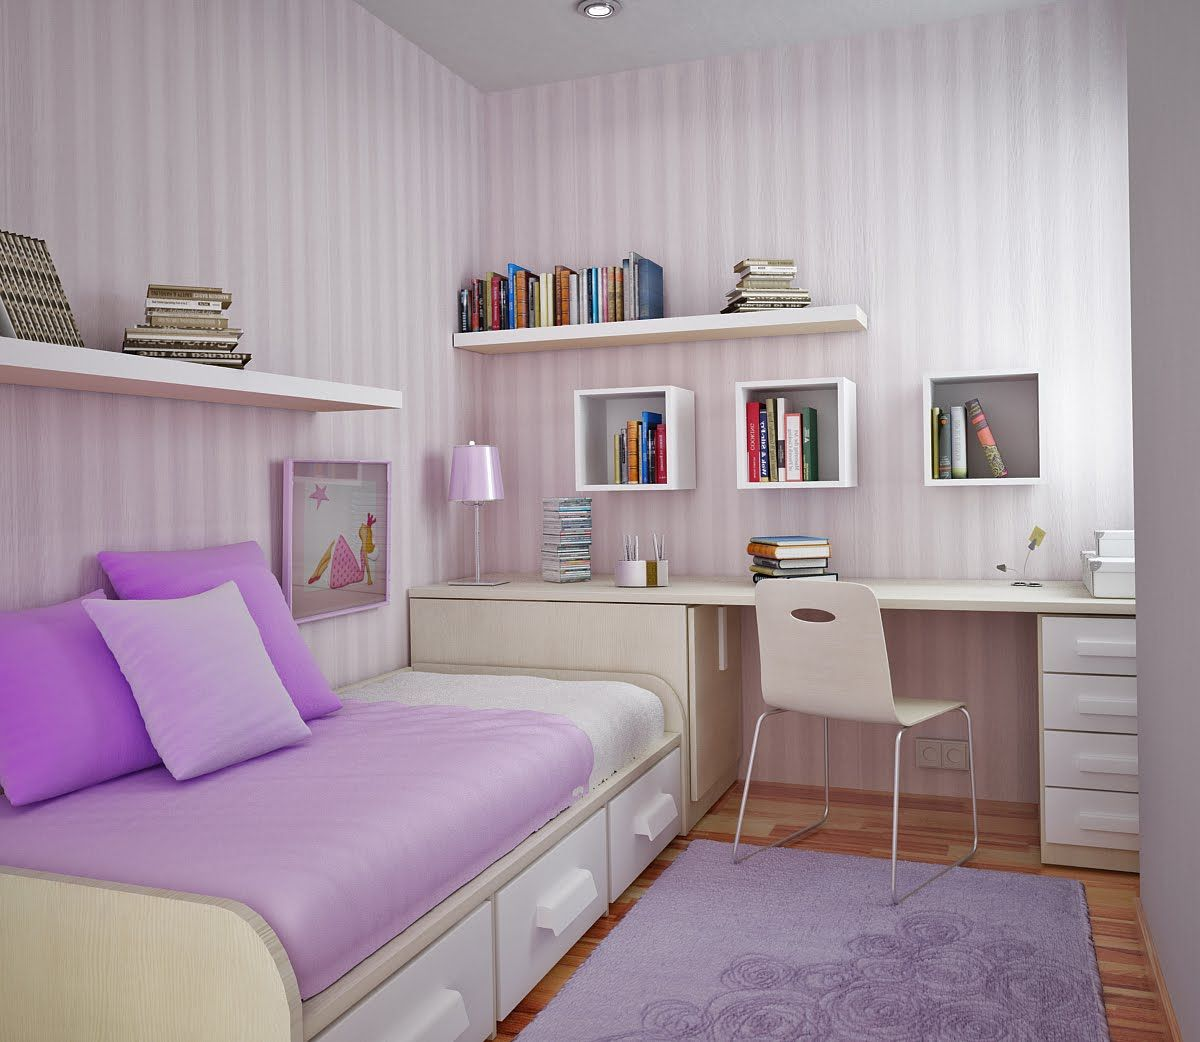 chic outstanding ideas for small kids rooms listed in small bedroom ideas small bedroom decorating topic and then small bedroom solutions - Room Design Ideas For Girl